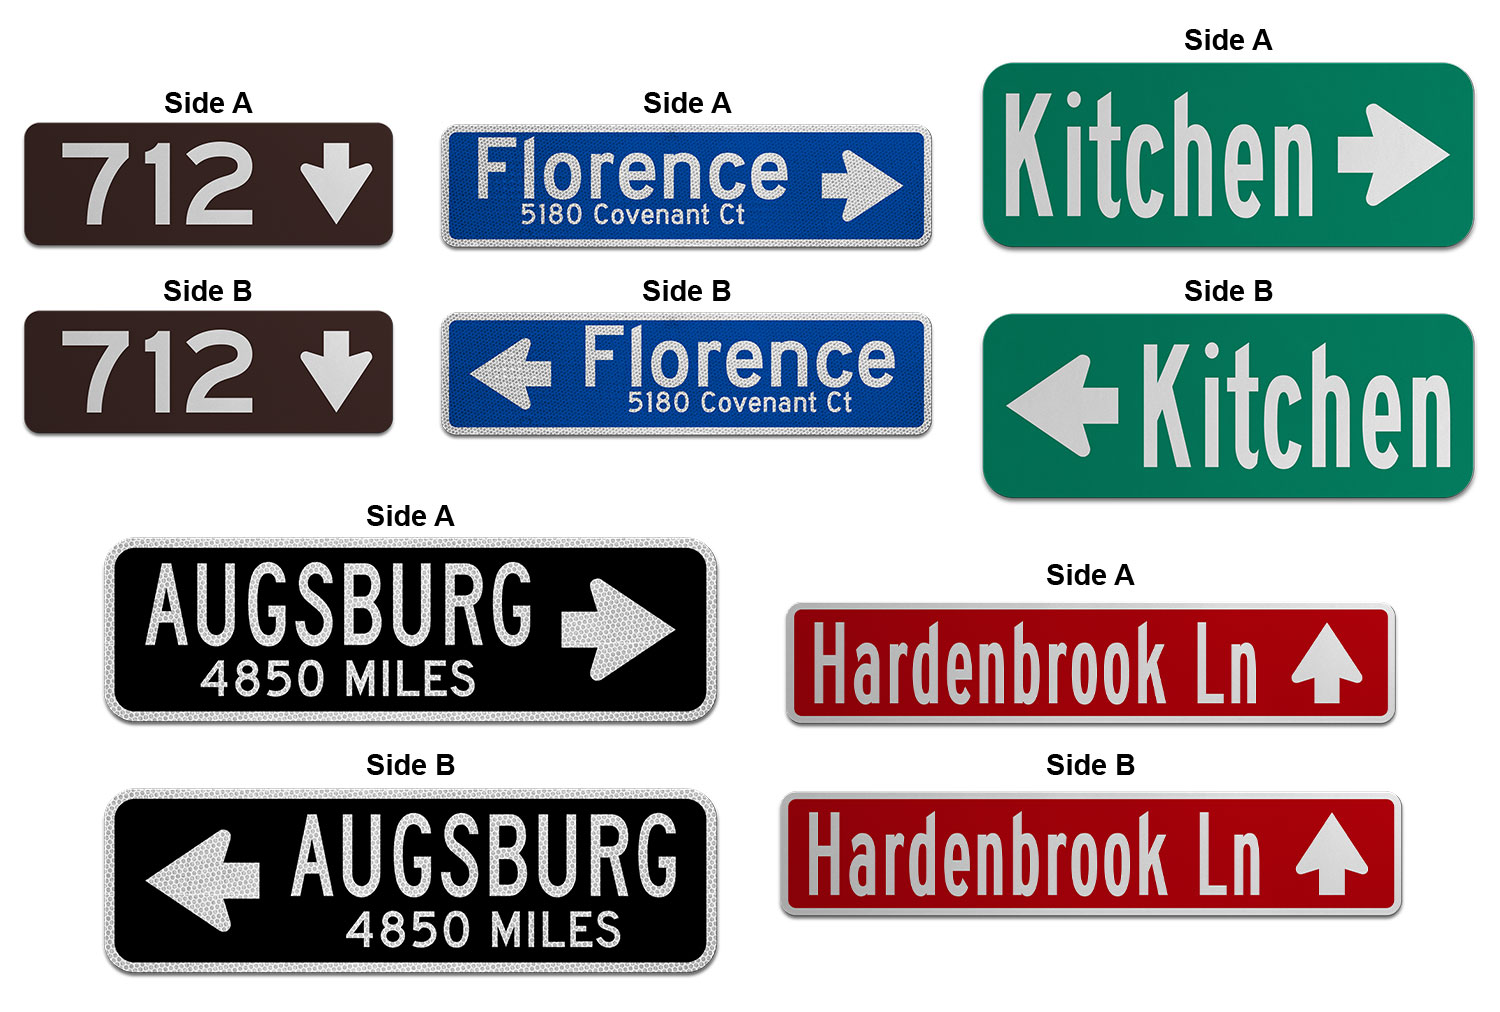 Samples of Printed Flat Blade Signs with a Directional Arrow